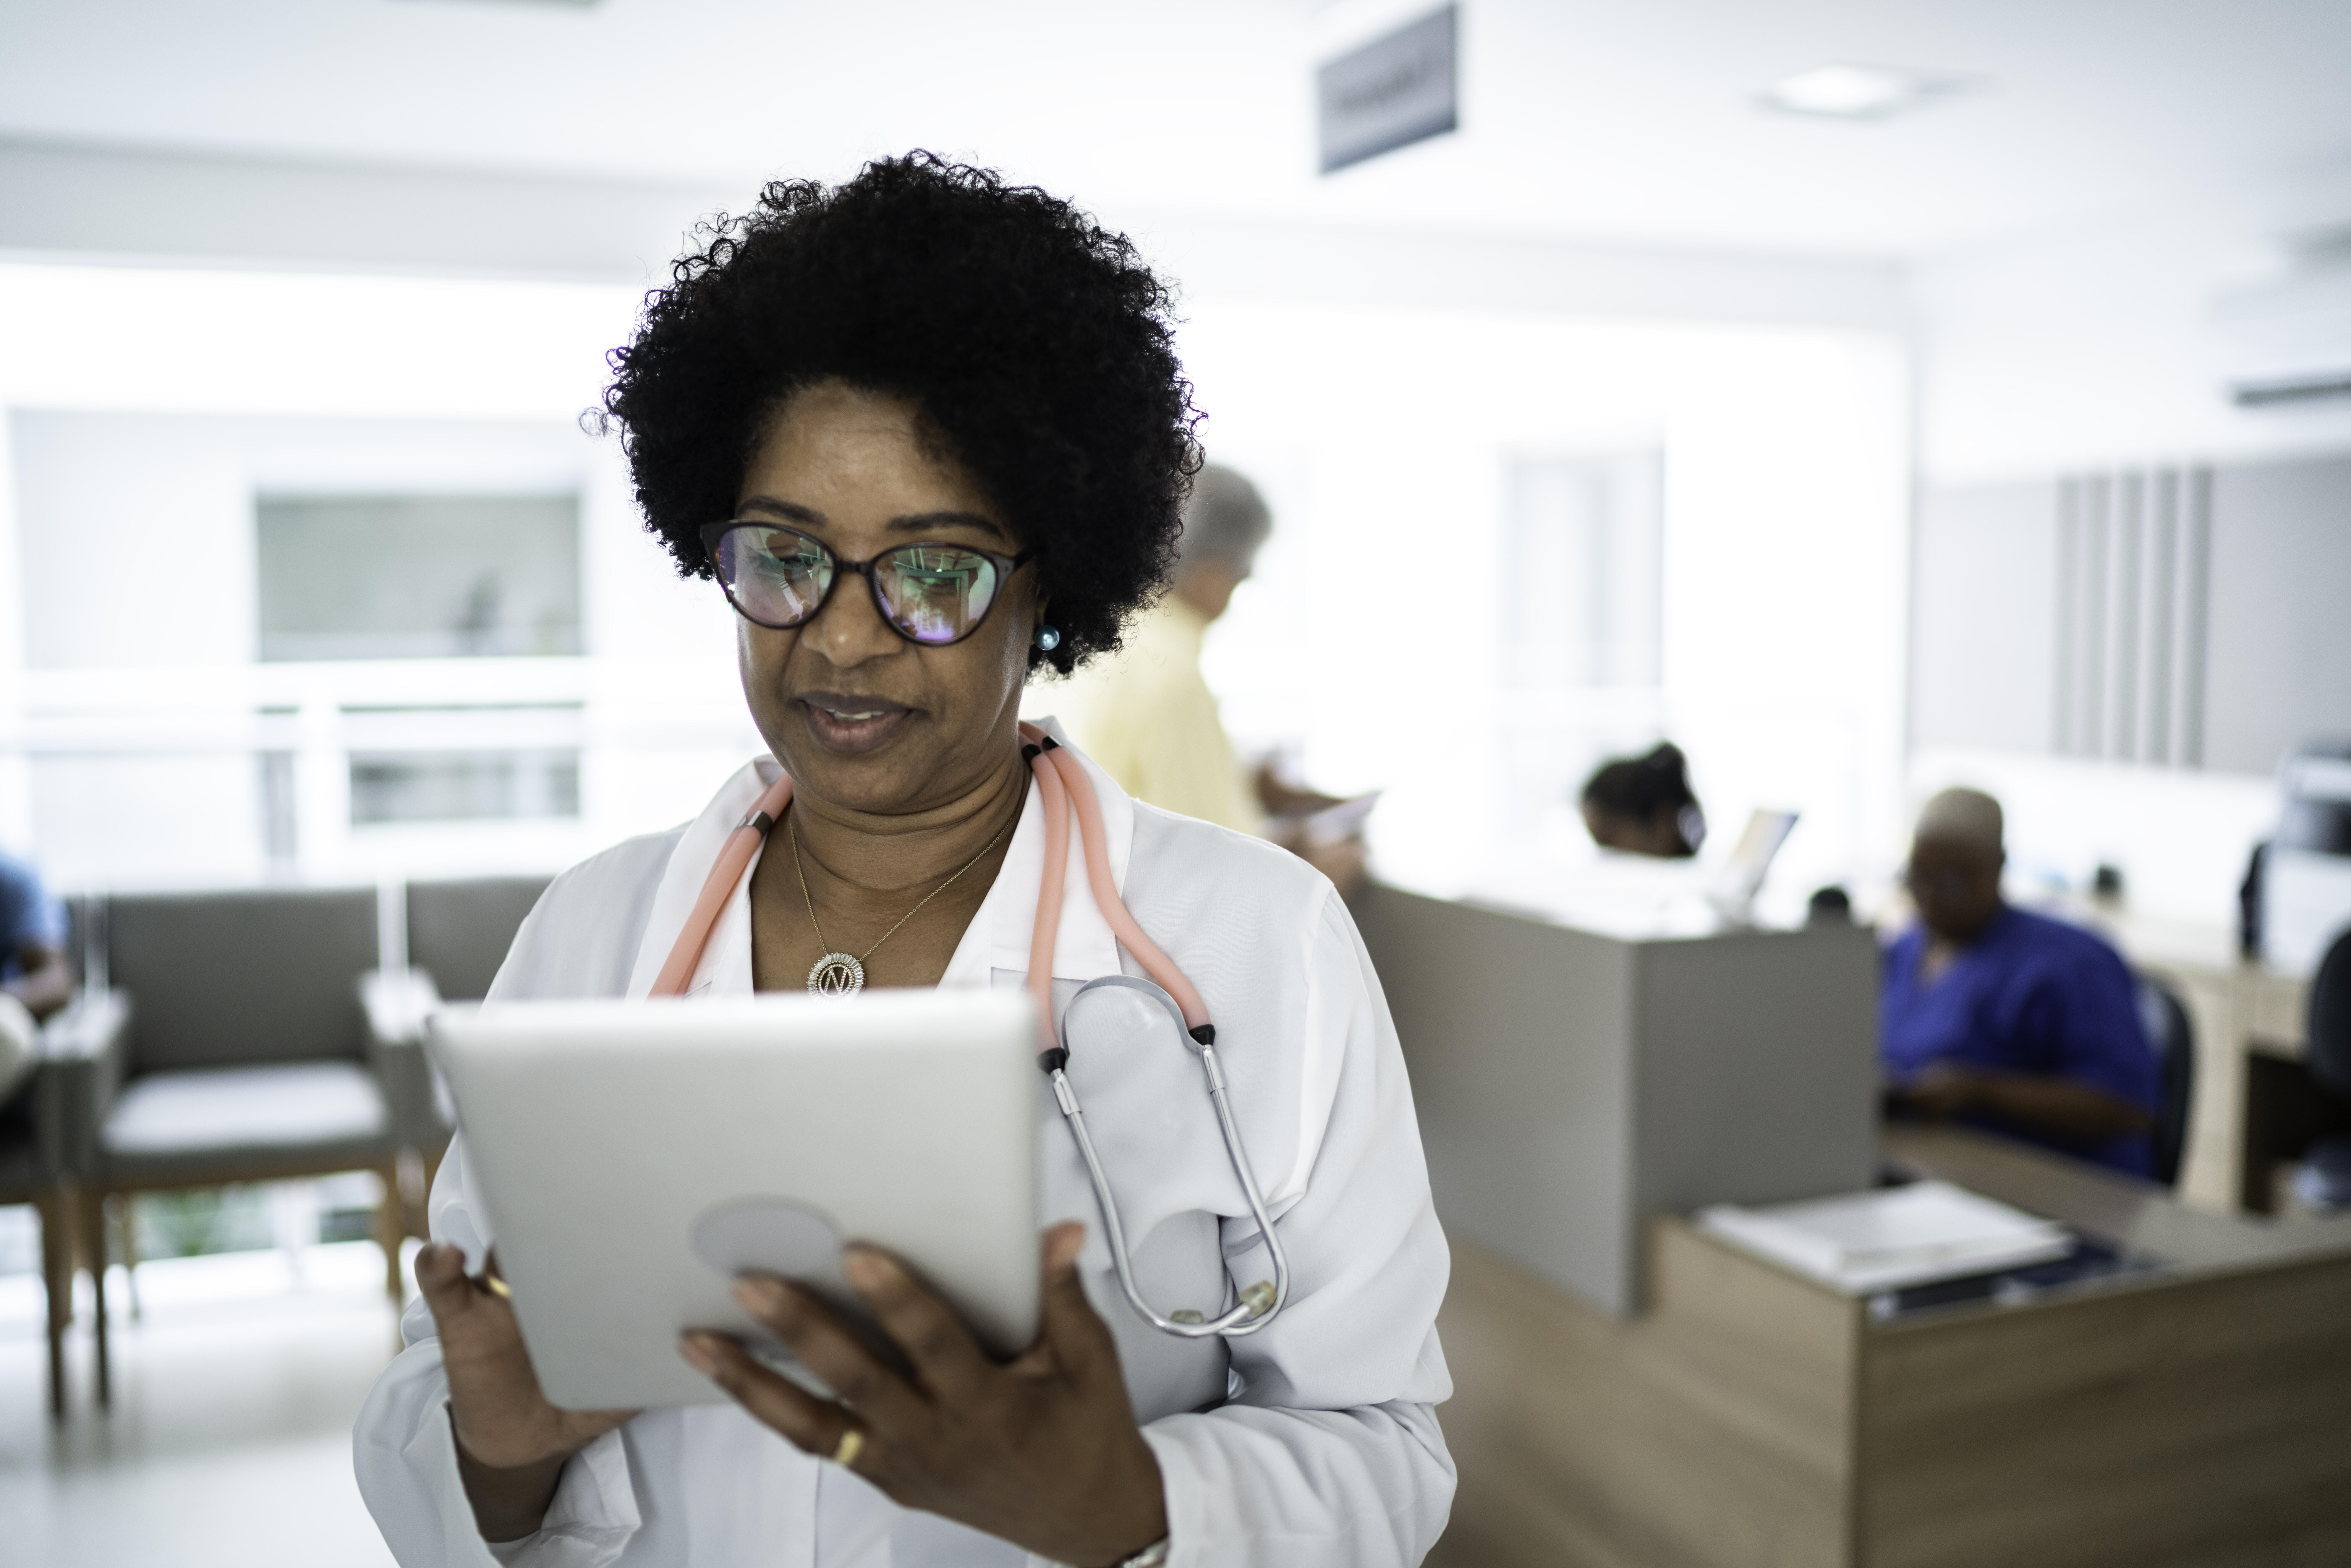 Doctor checking electronic medical records on a tablet